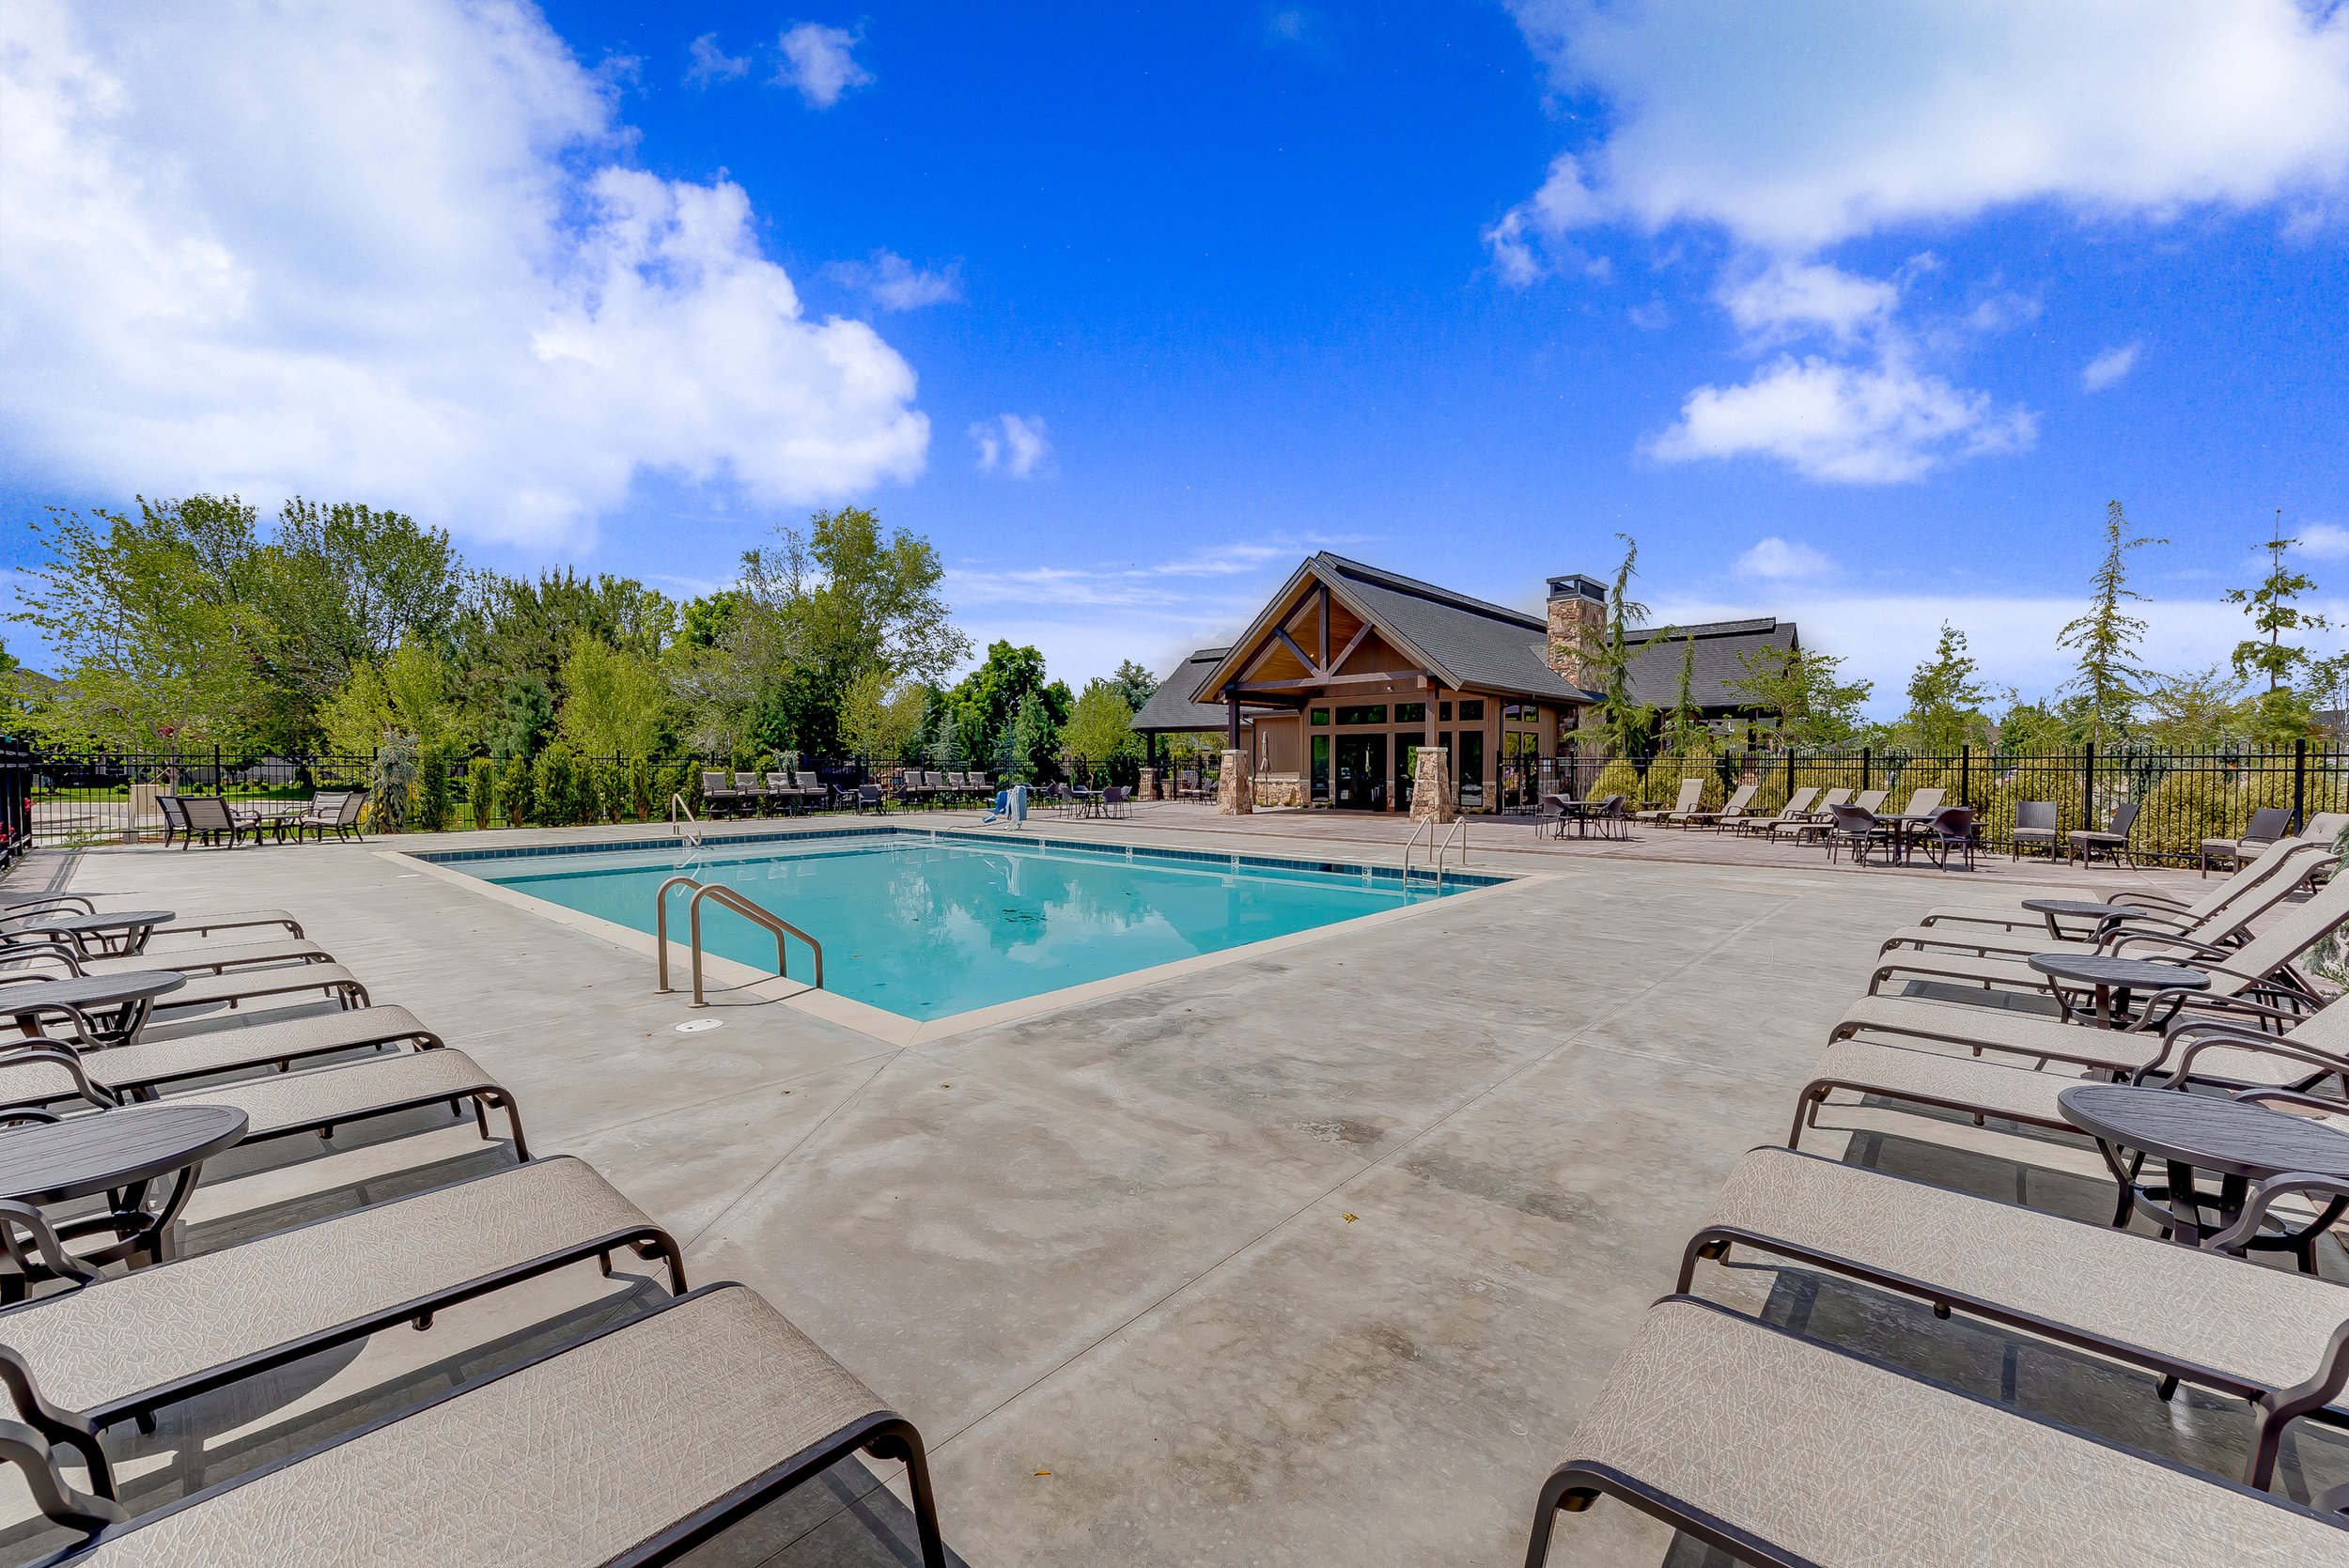 16-Williamson River Ranch Pool.jpg